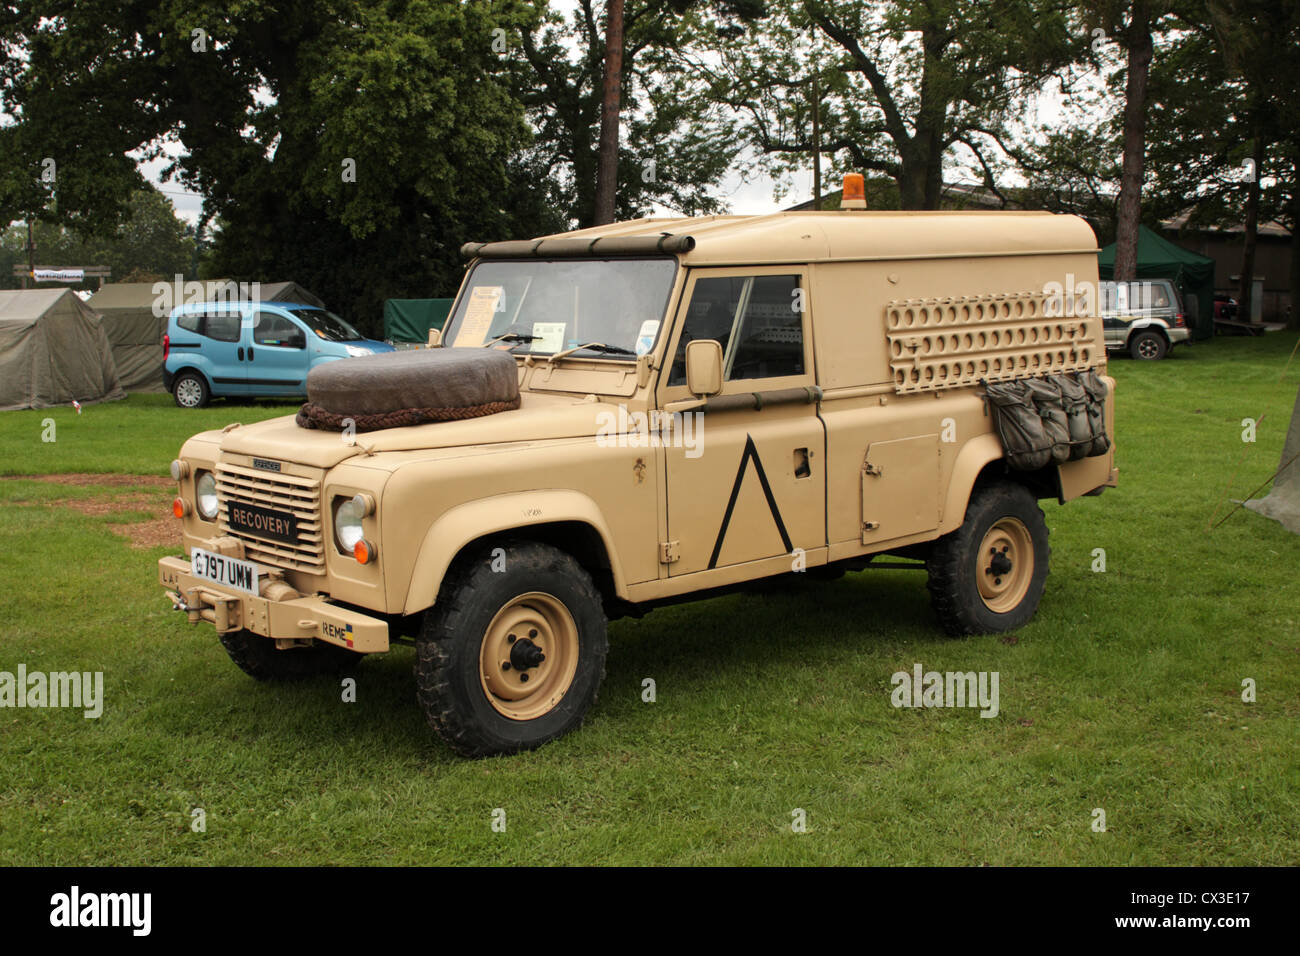 British Army Land Rover in desert camouflage - Stock Image